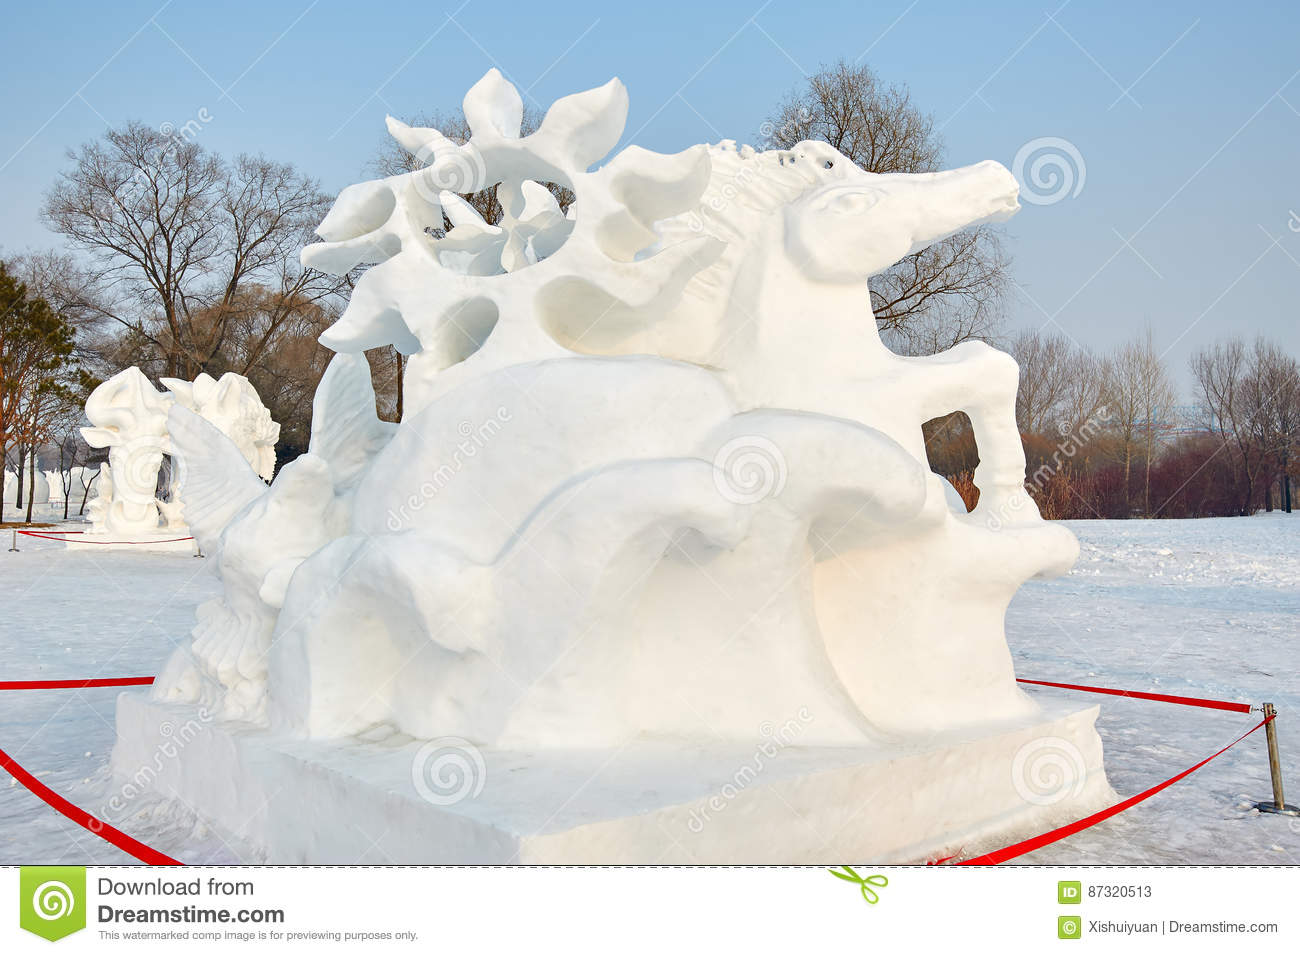 The Snow Sculpture The Horse Editorial Stock Photo Image Of Dream House 87320513